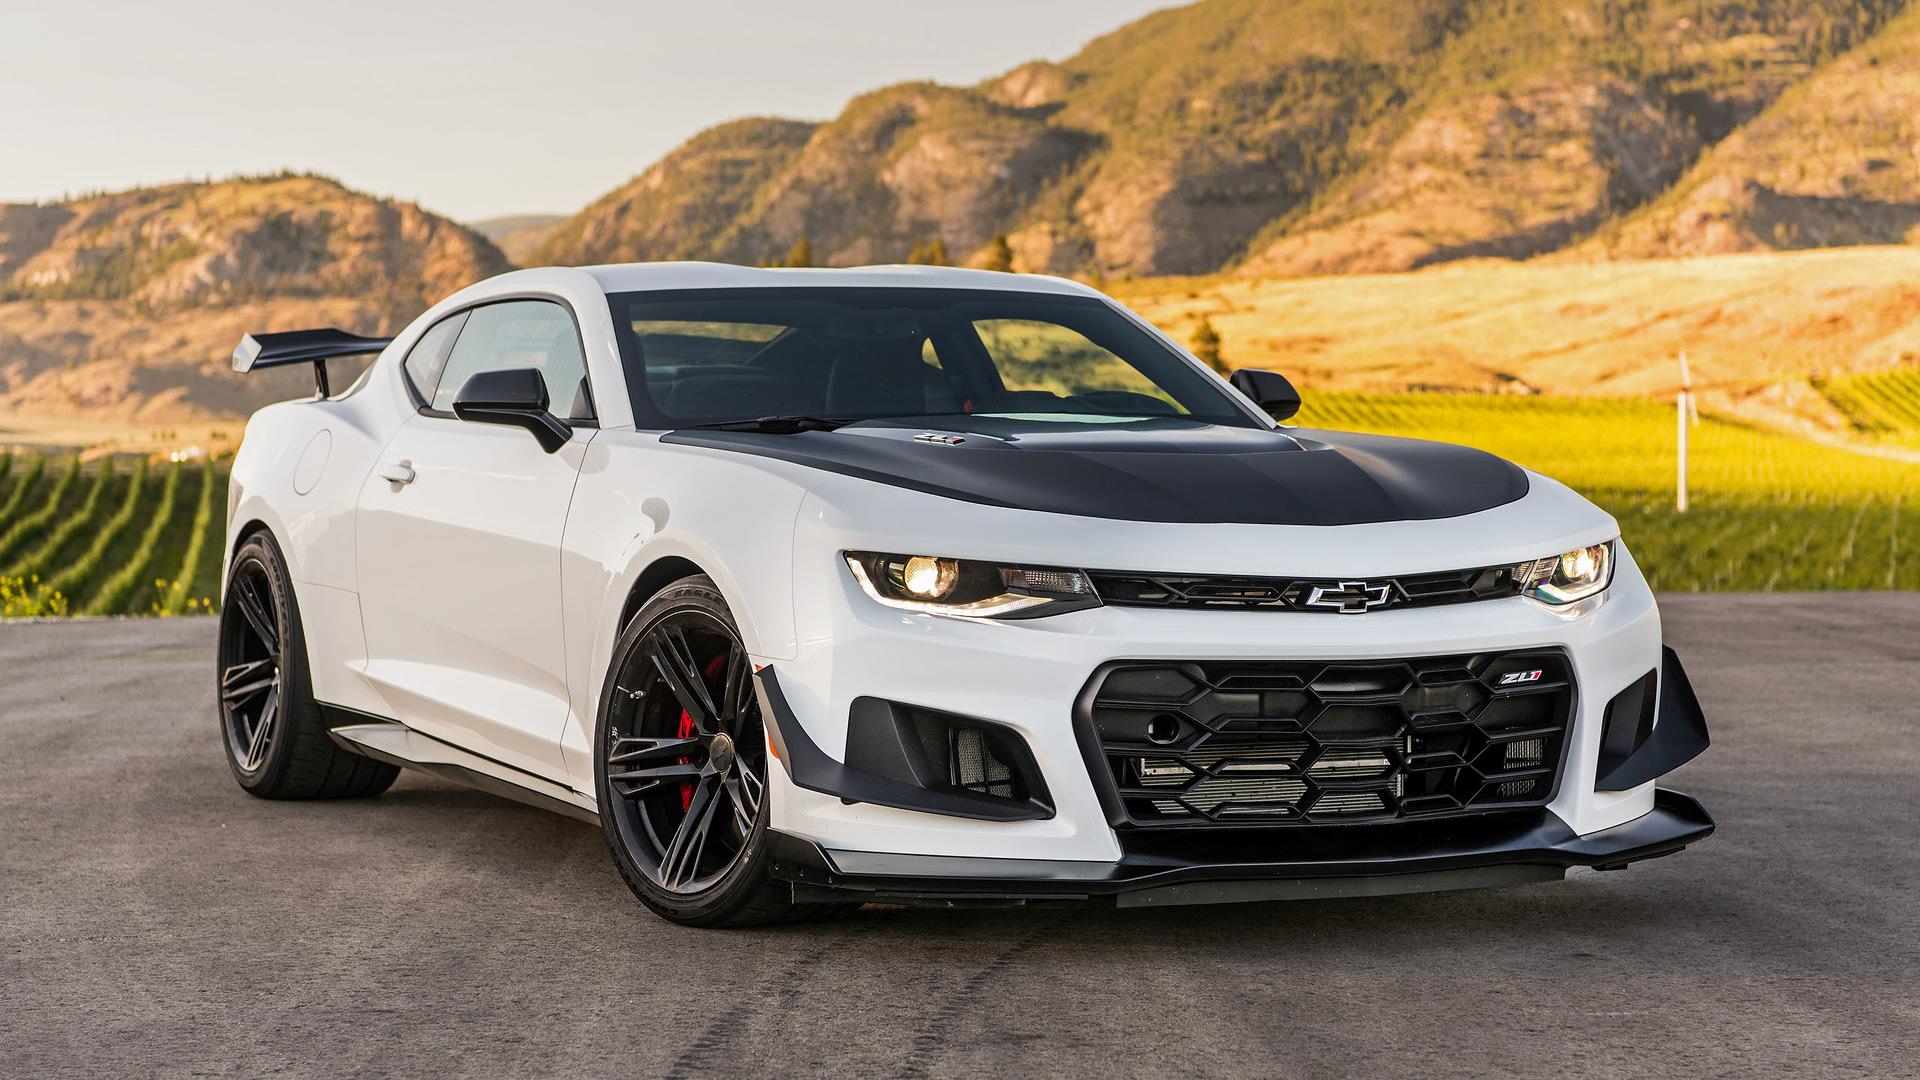 2019 Camaro Zl1 Best New Cars For 2018